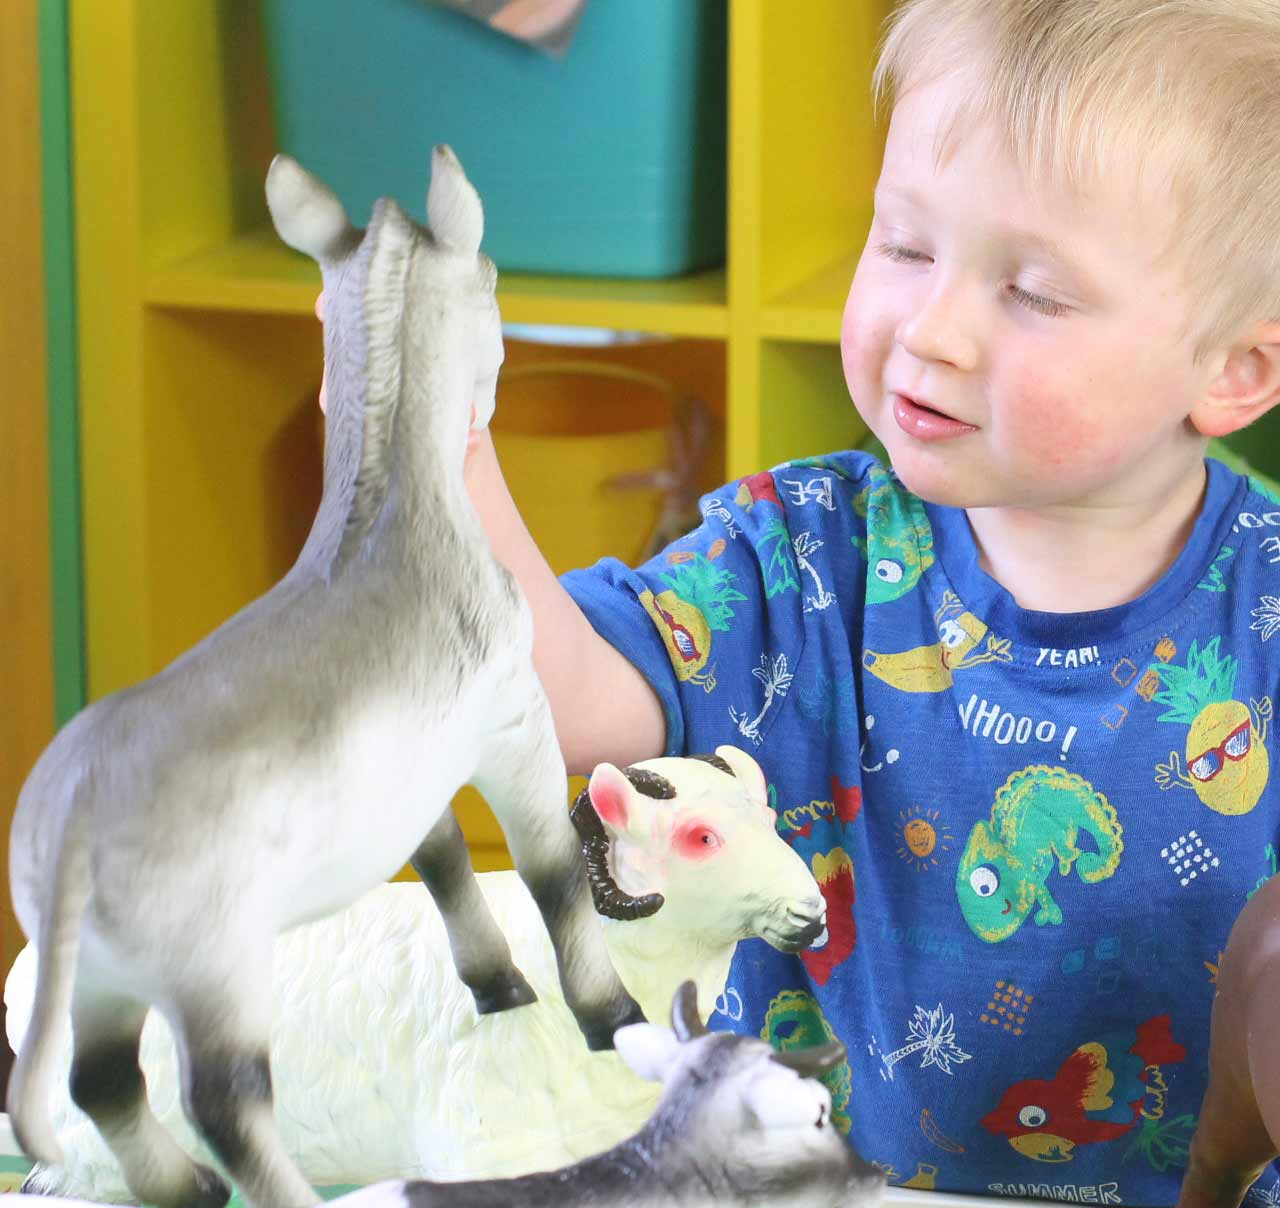 Watch and enjoy as young children learn to act out each of the sounds that the animals make.